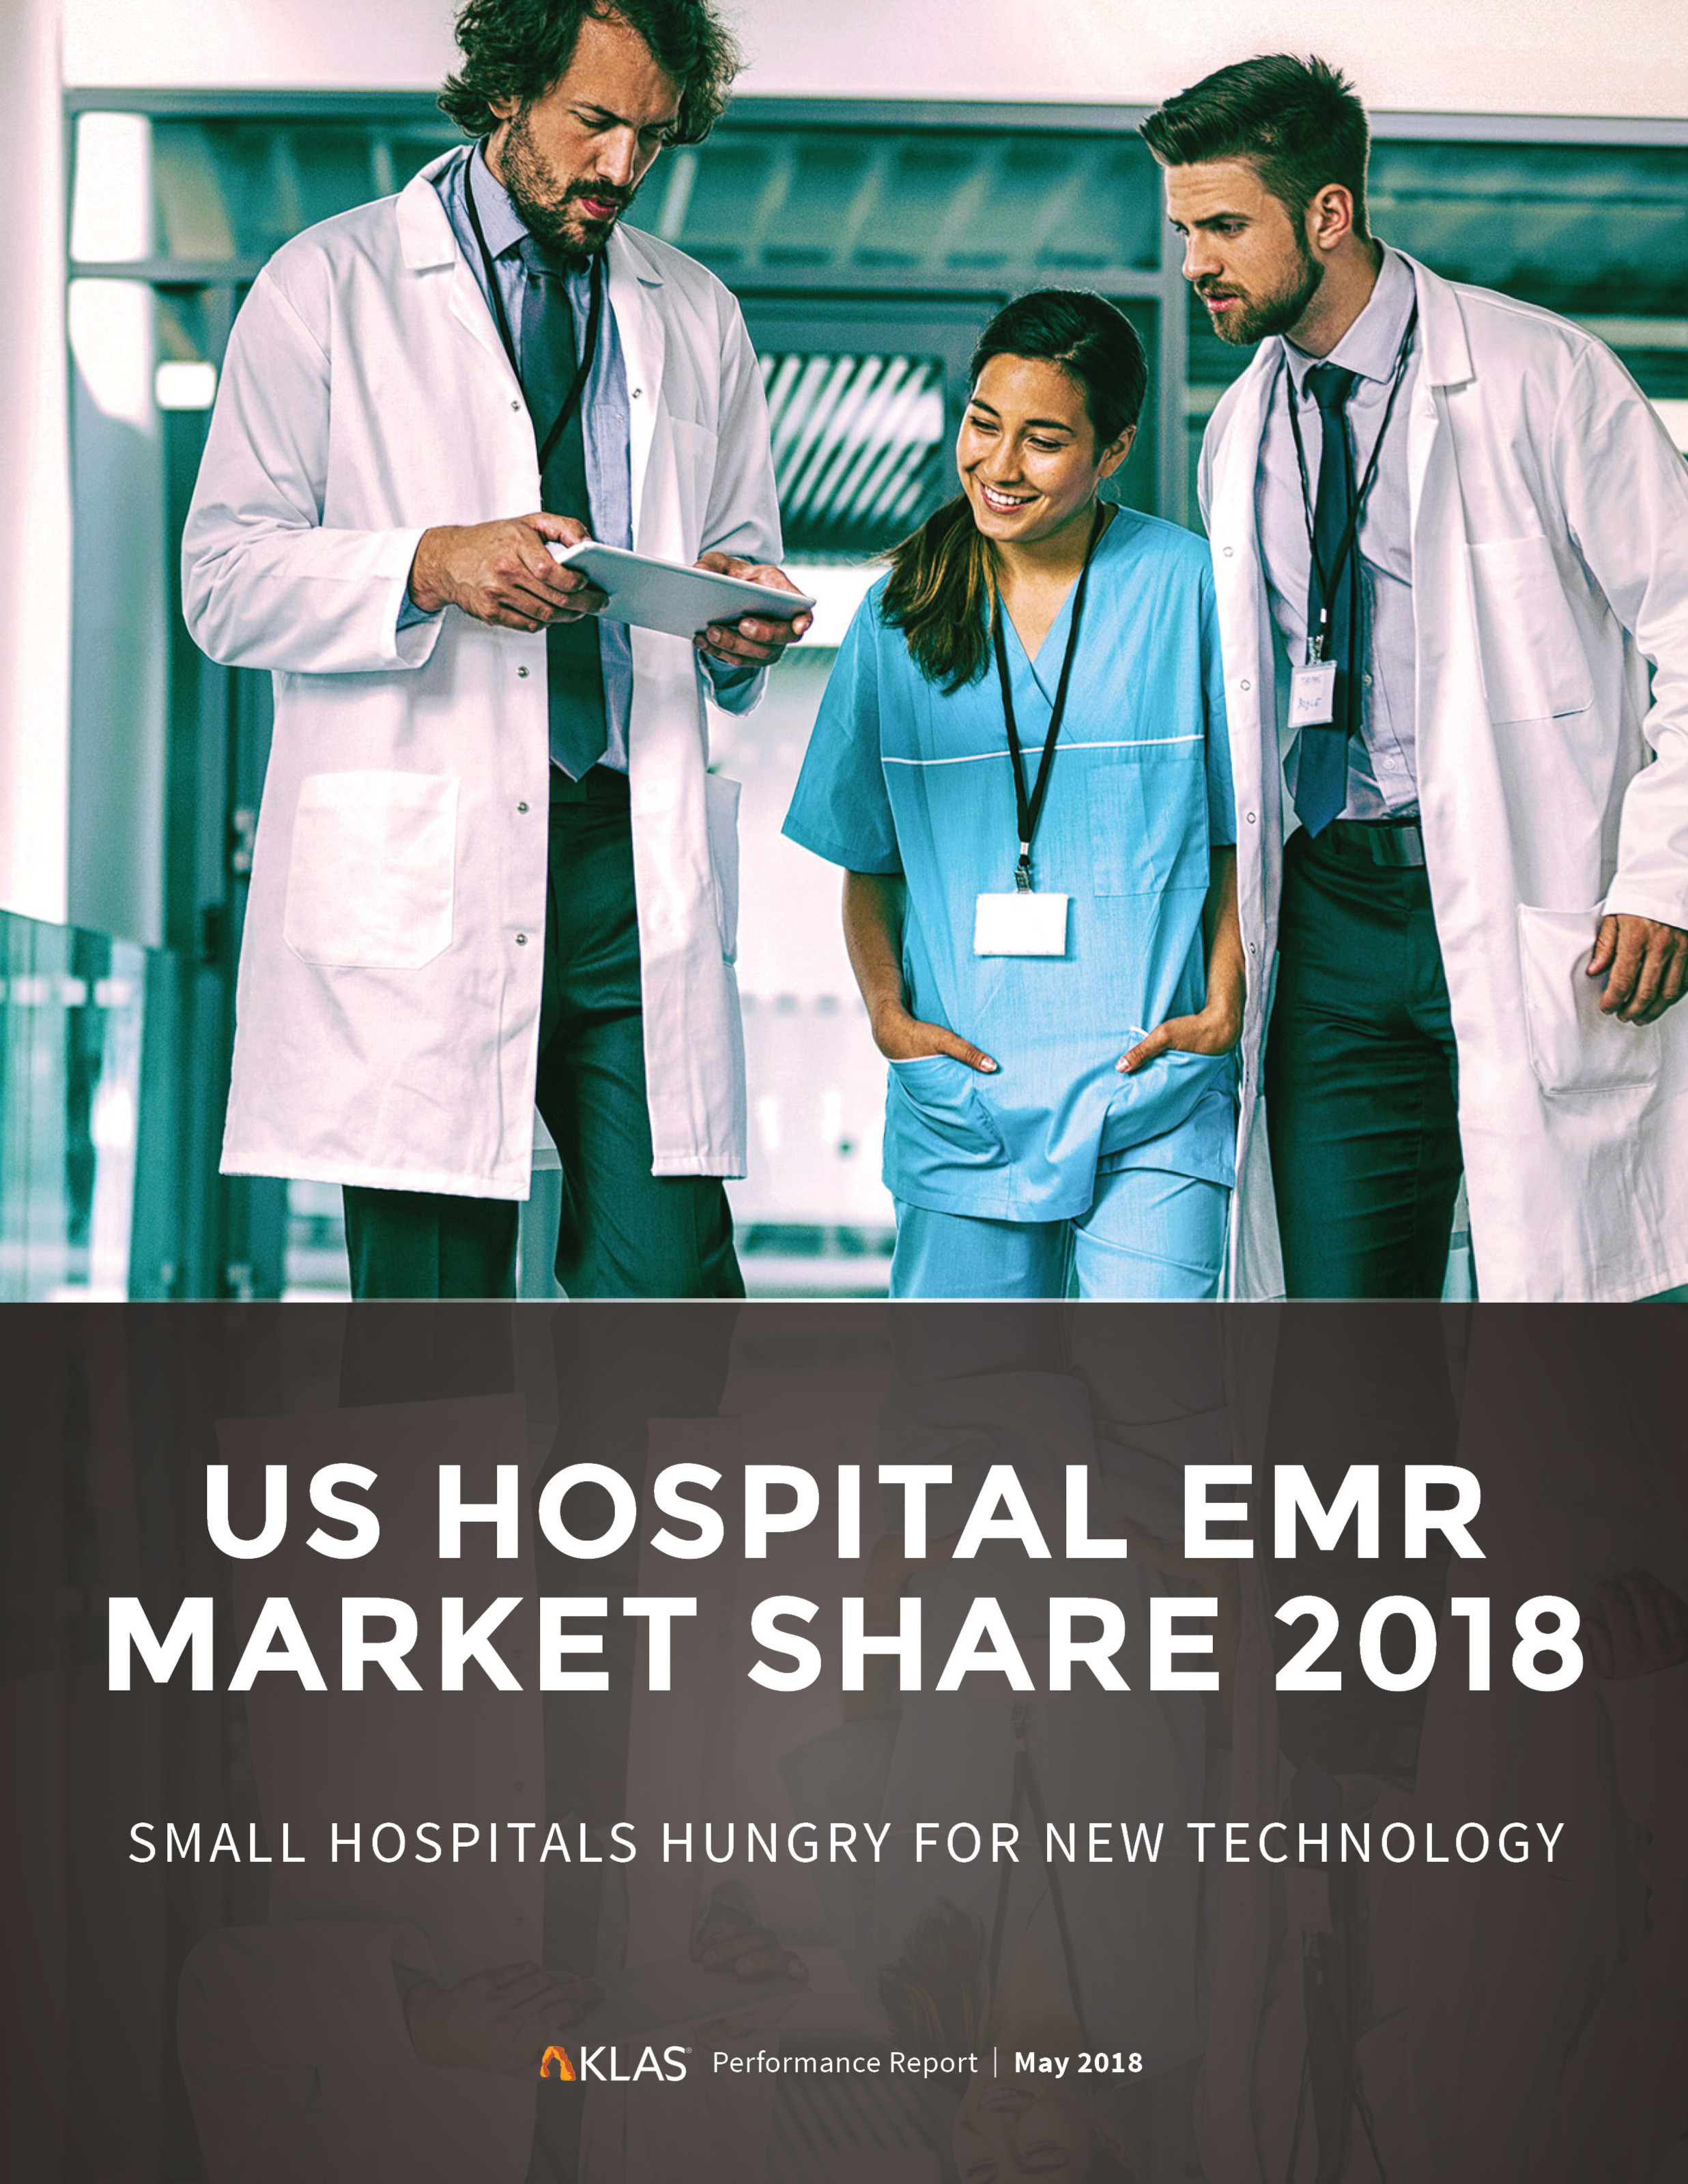 US Hospital EMR Market Share 2018